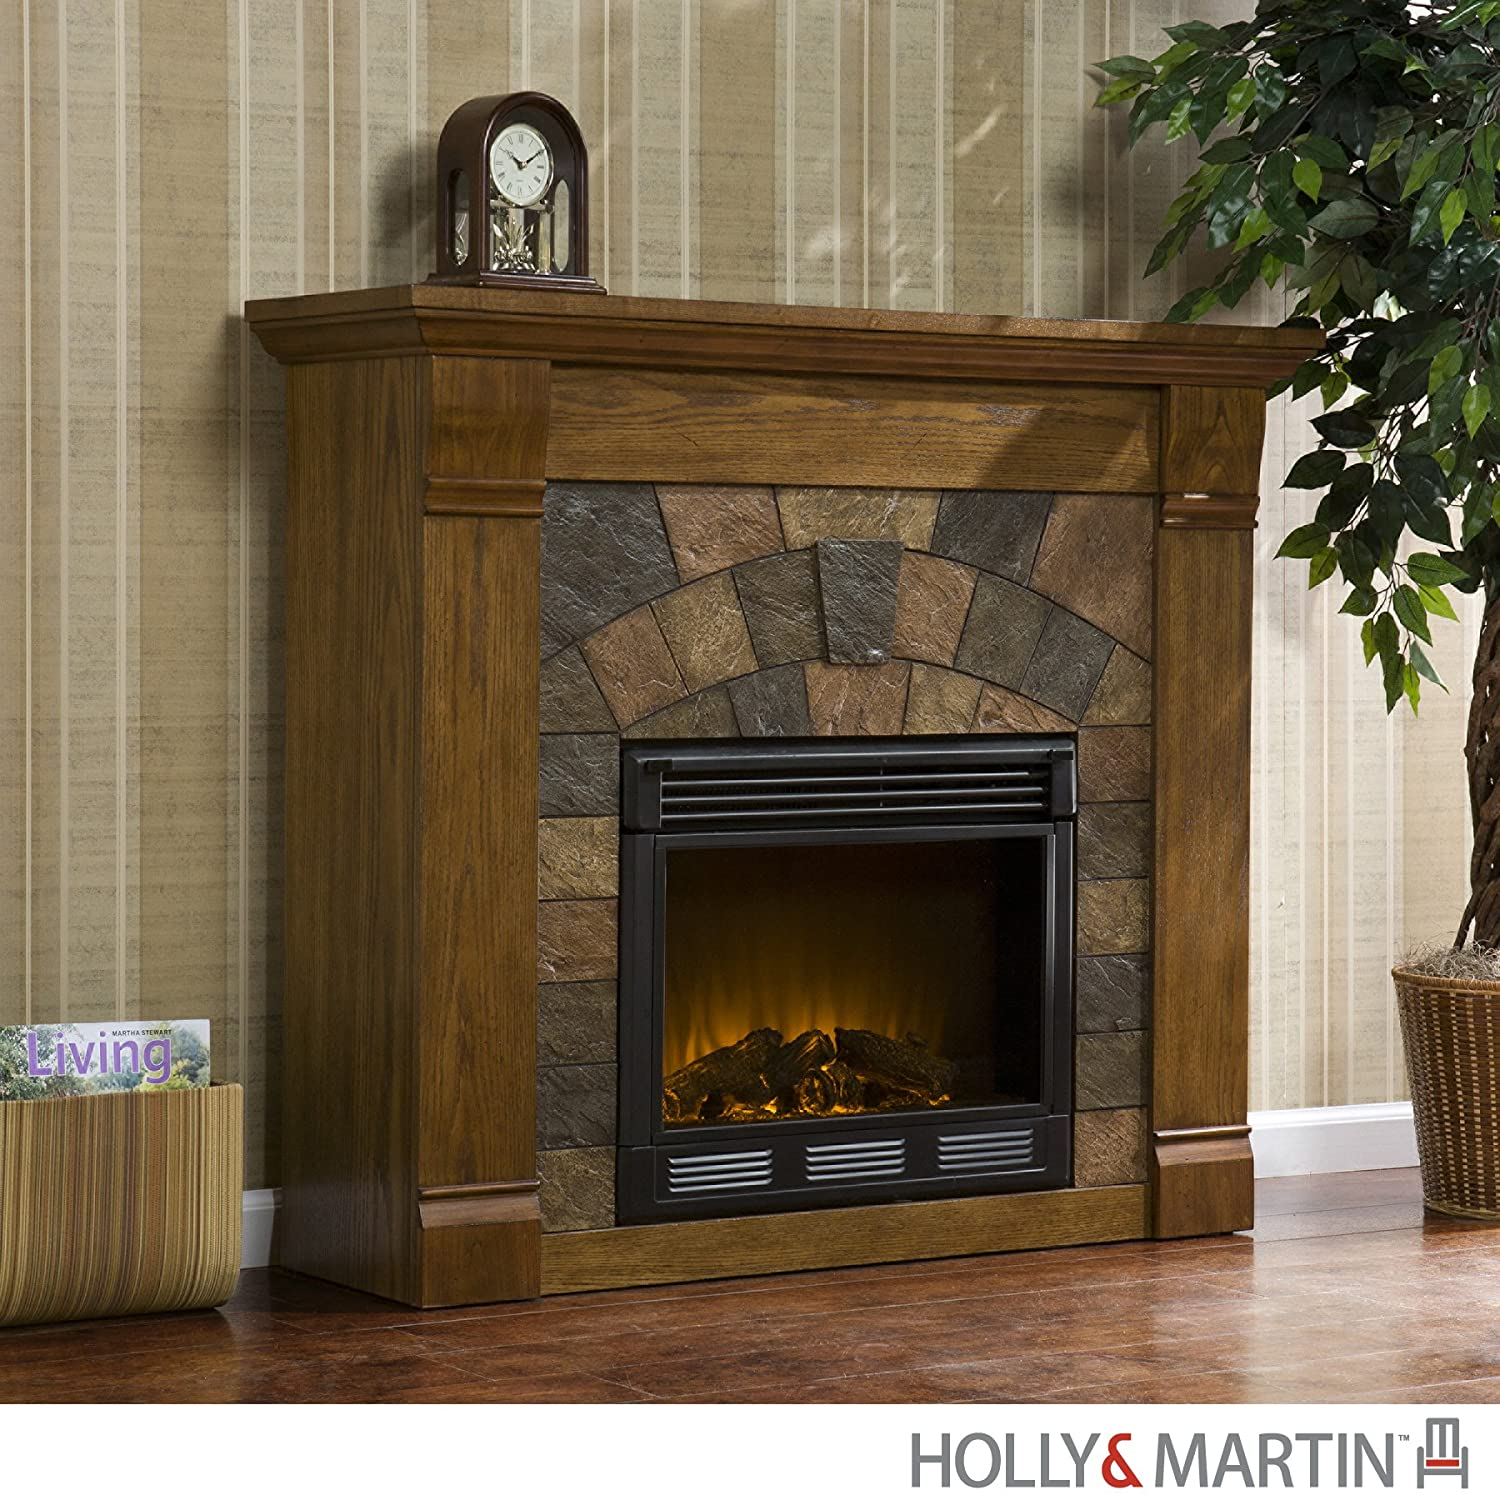 Holly & Martin Underwood Electric Fireplace Oak - Portable & Electric Fireplaces Amazon.com